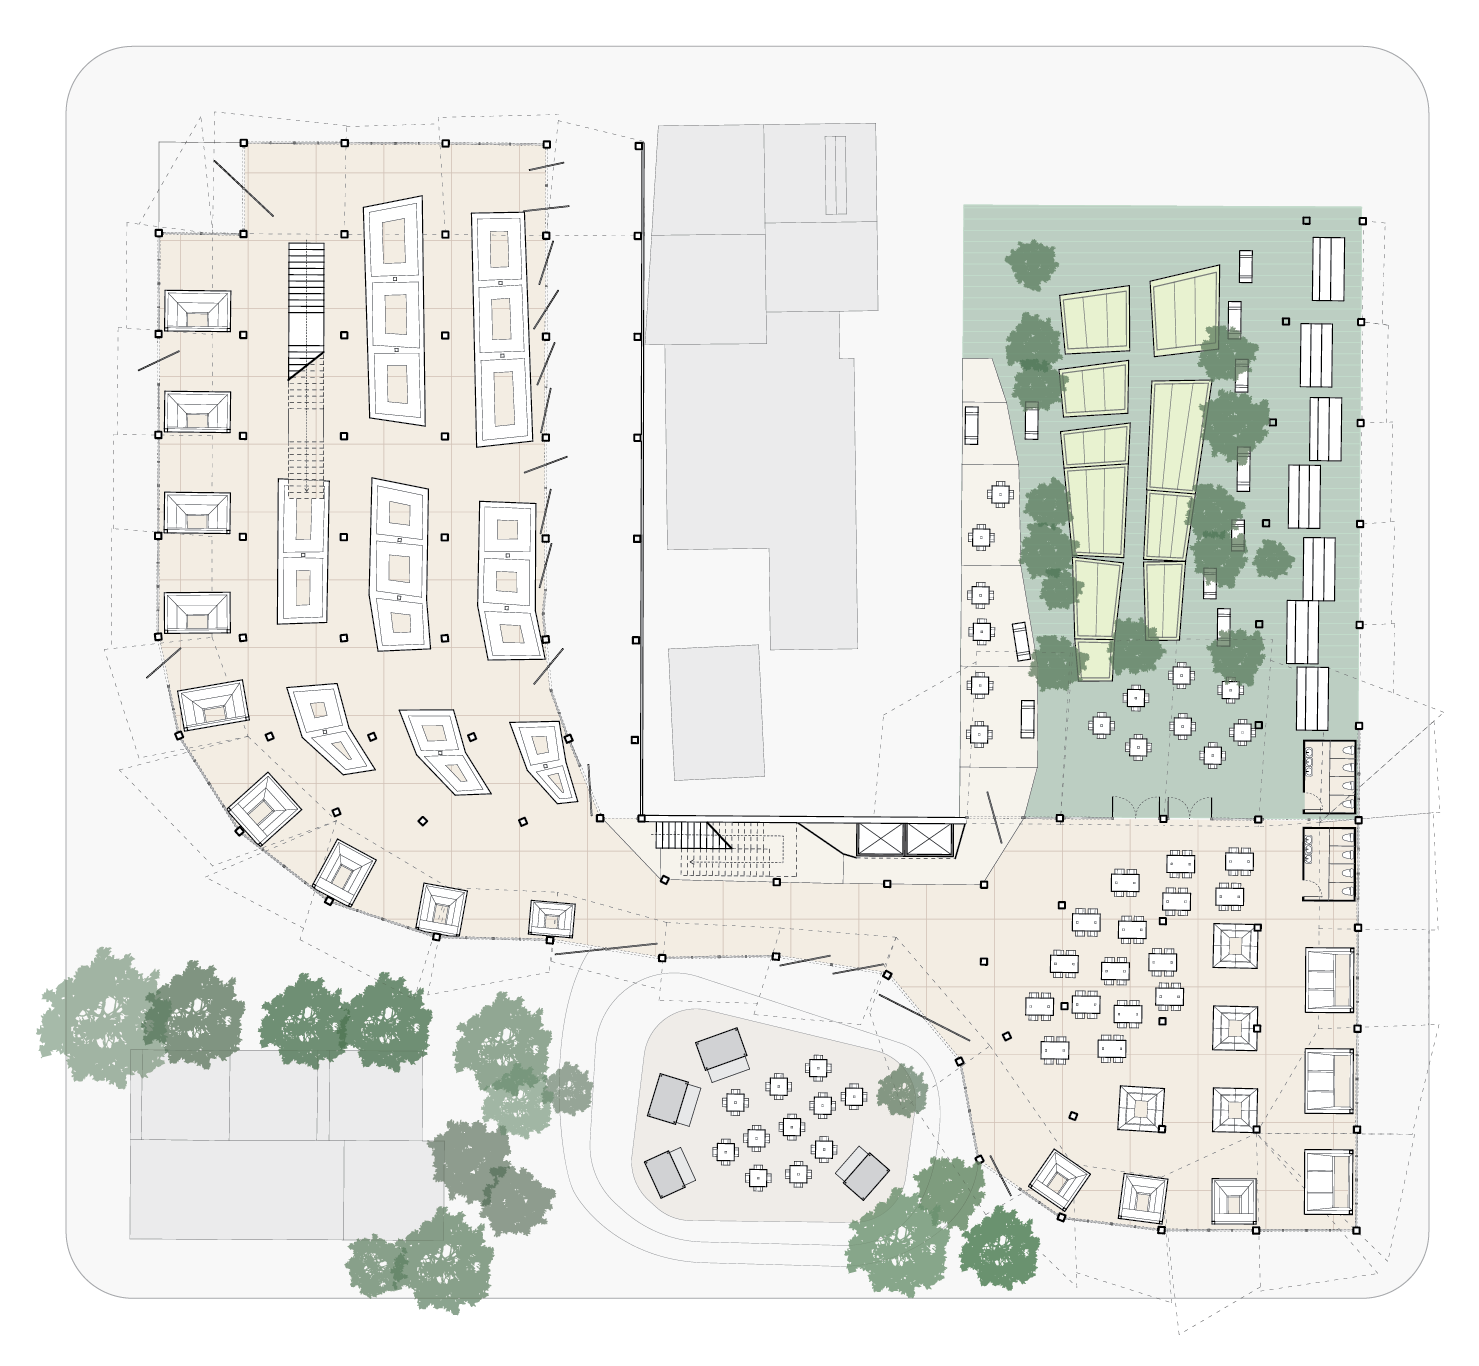 level 1 plan: two main market areas, one indoor dining area, and two smaller outdoor dining areas